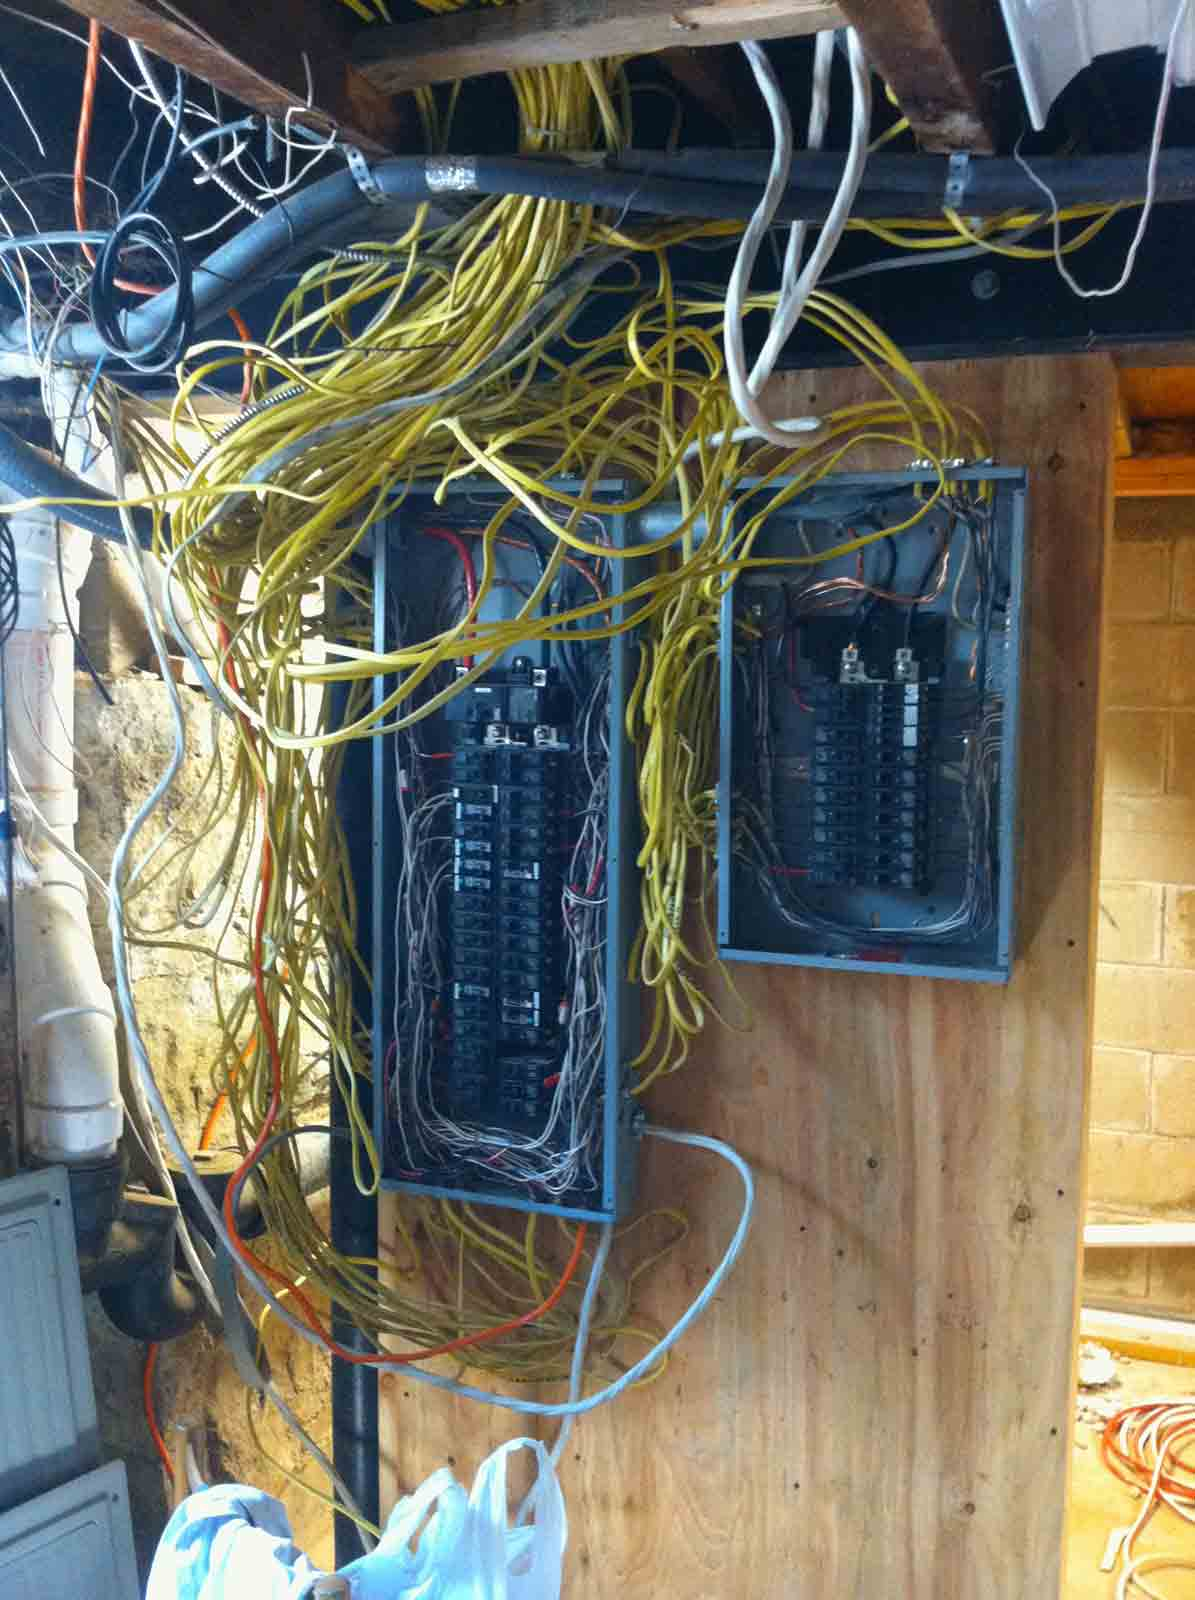 Show Me Your Neatly Wired Panels Electrical Diy